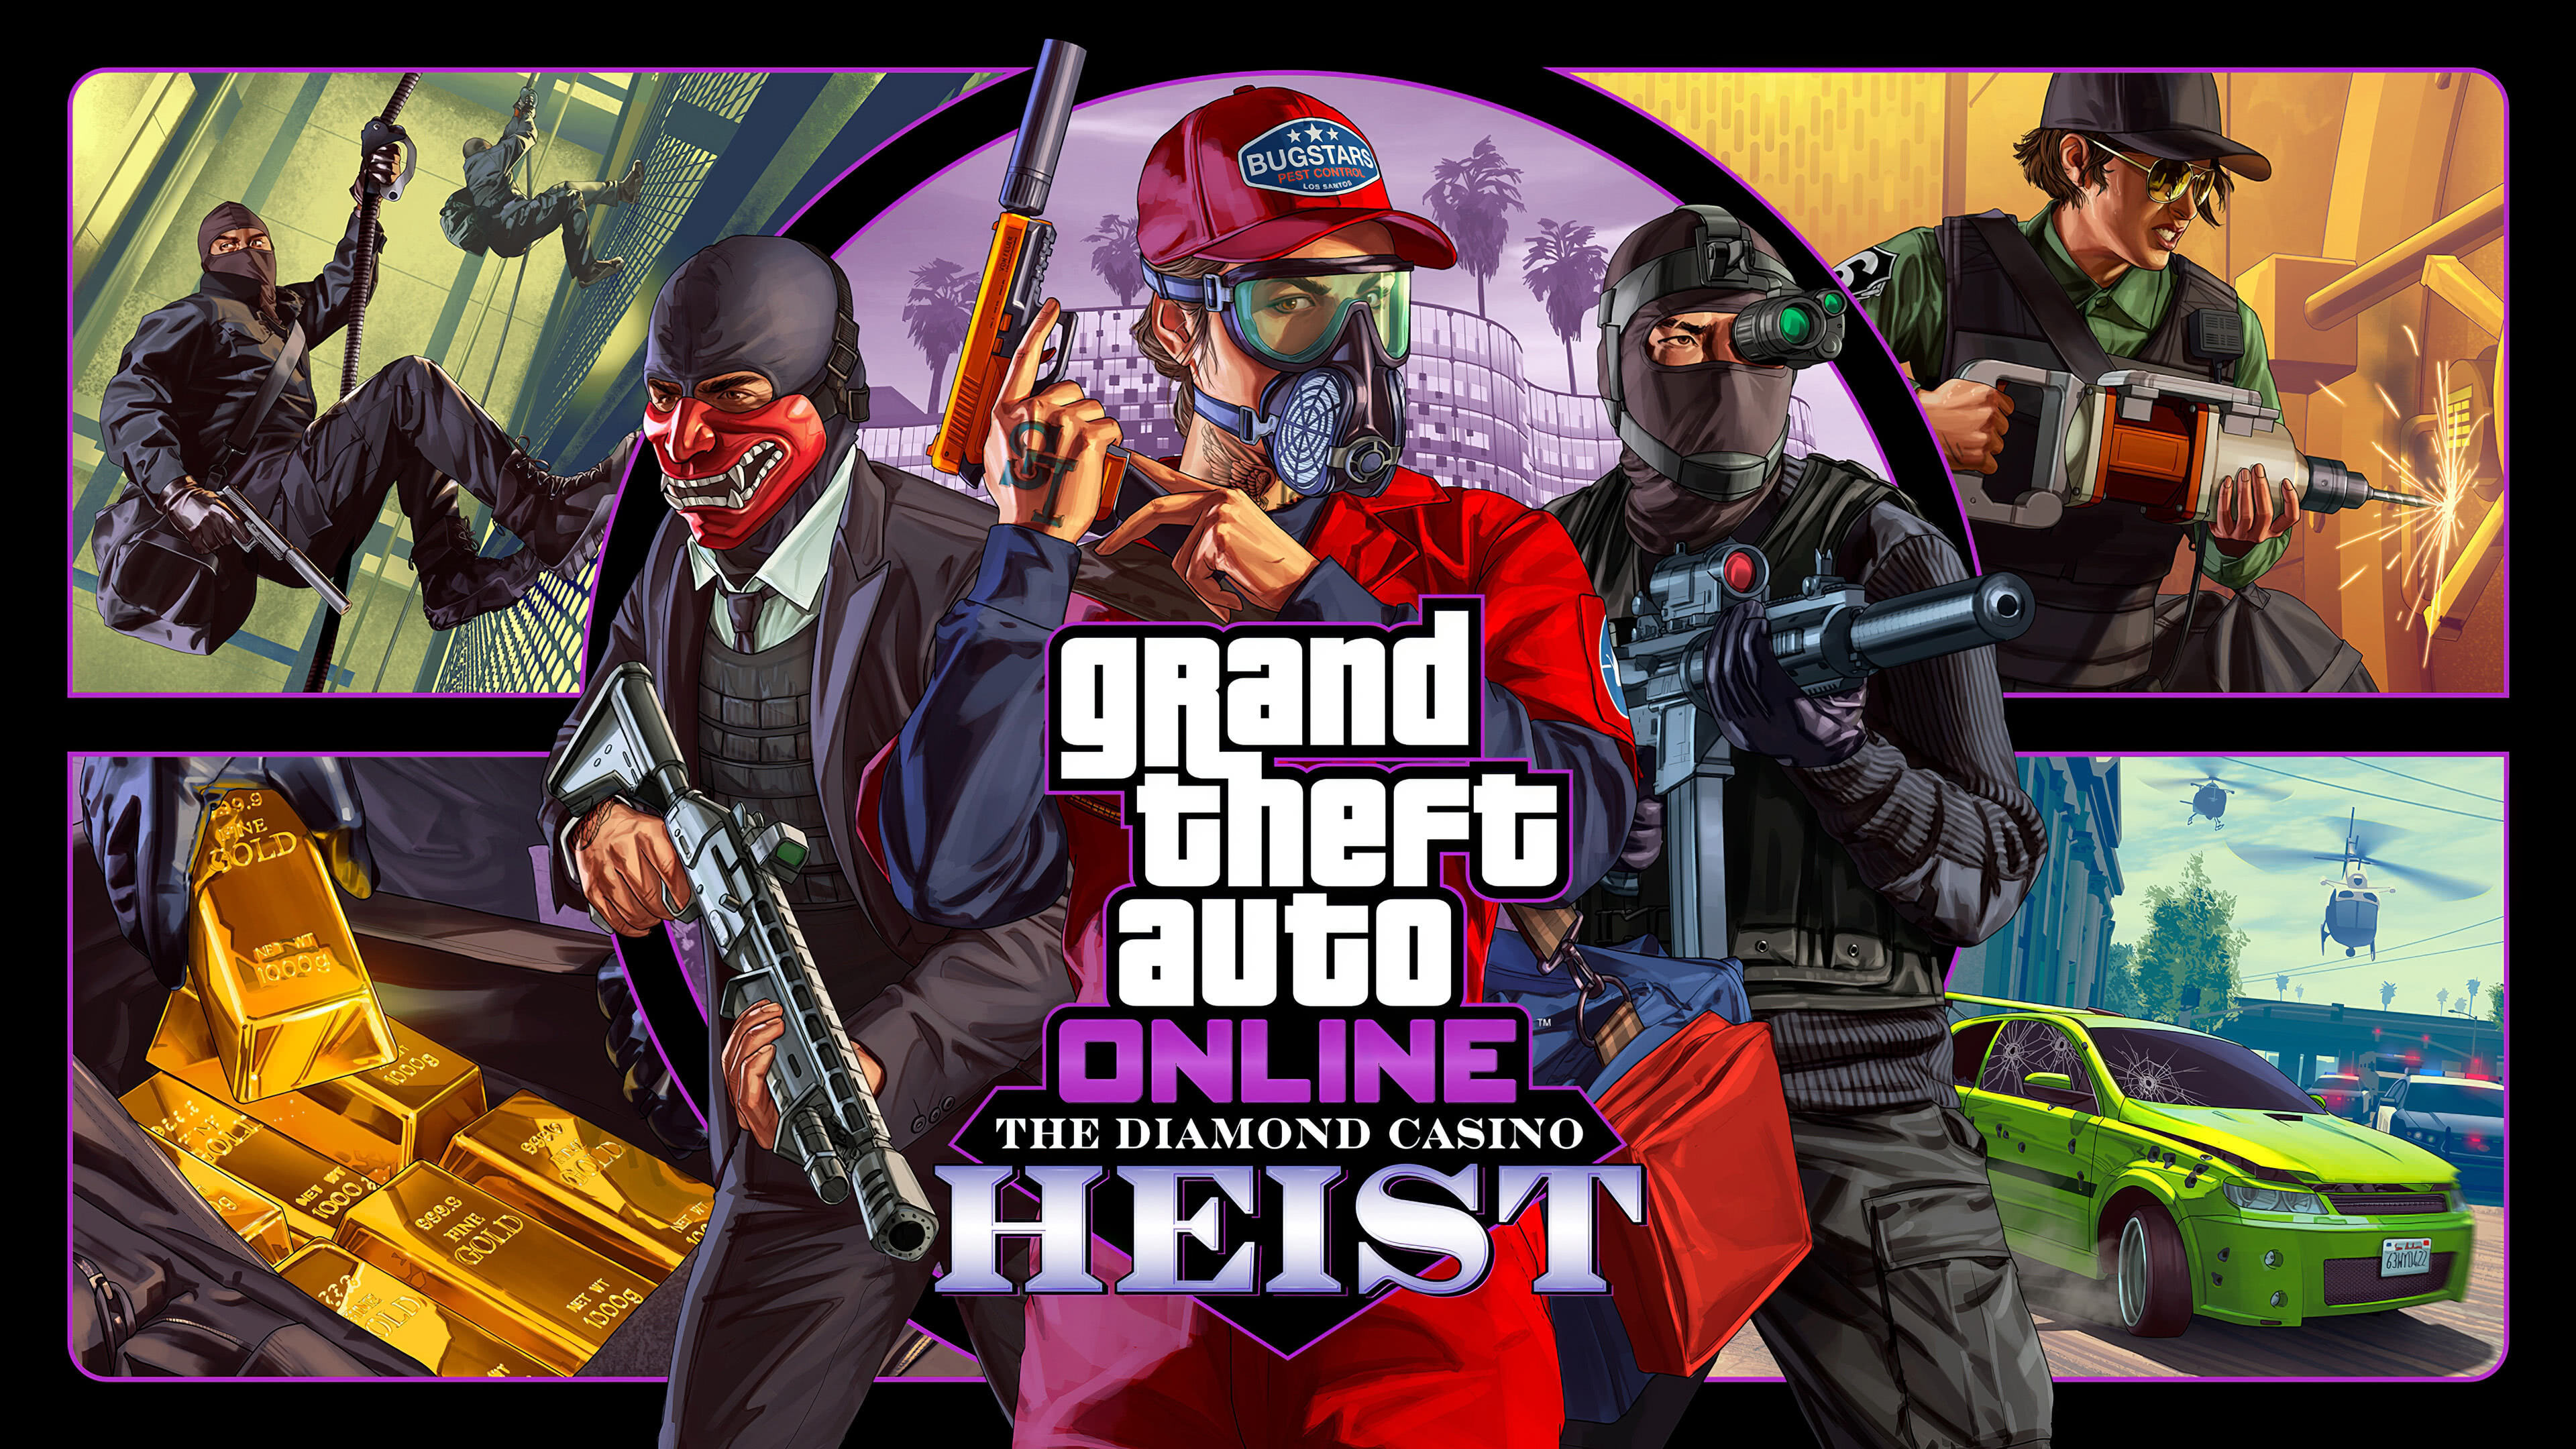 grand theft auto 5 online the diamond casino heist uhd 4k wallpaper